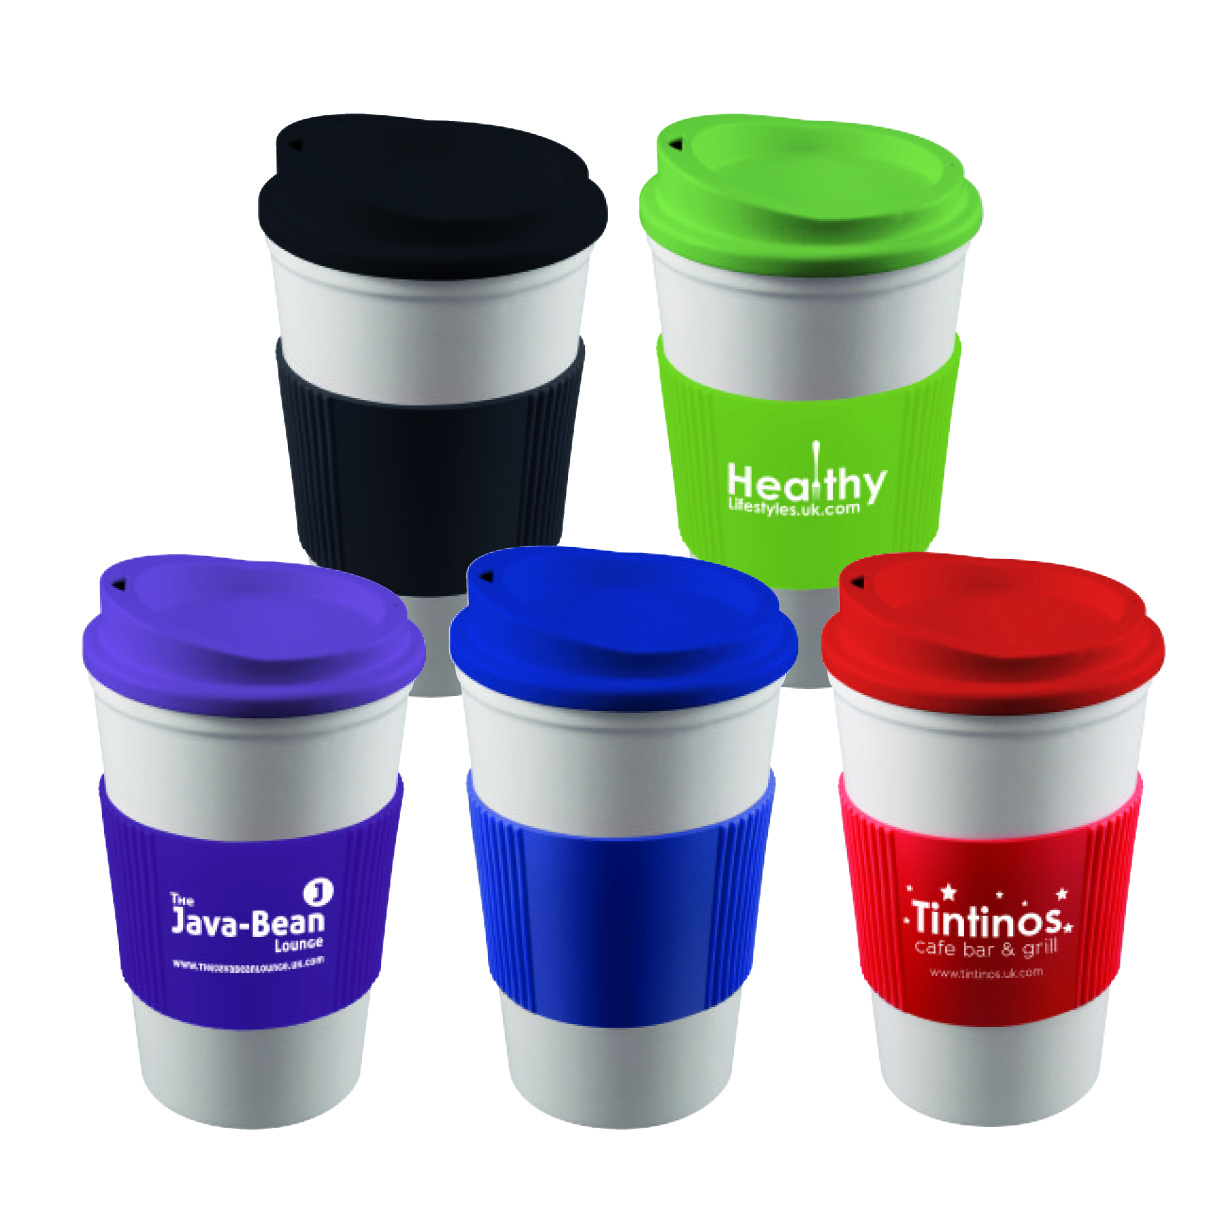 Promotional Products Index Business Supplies Ltd